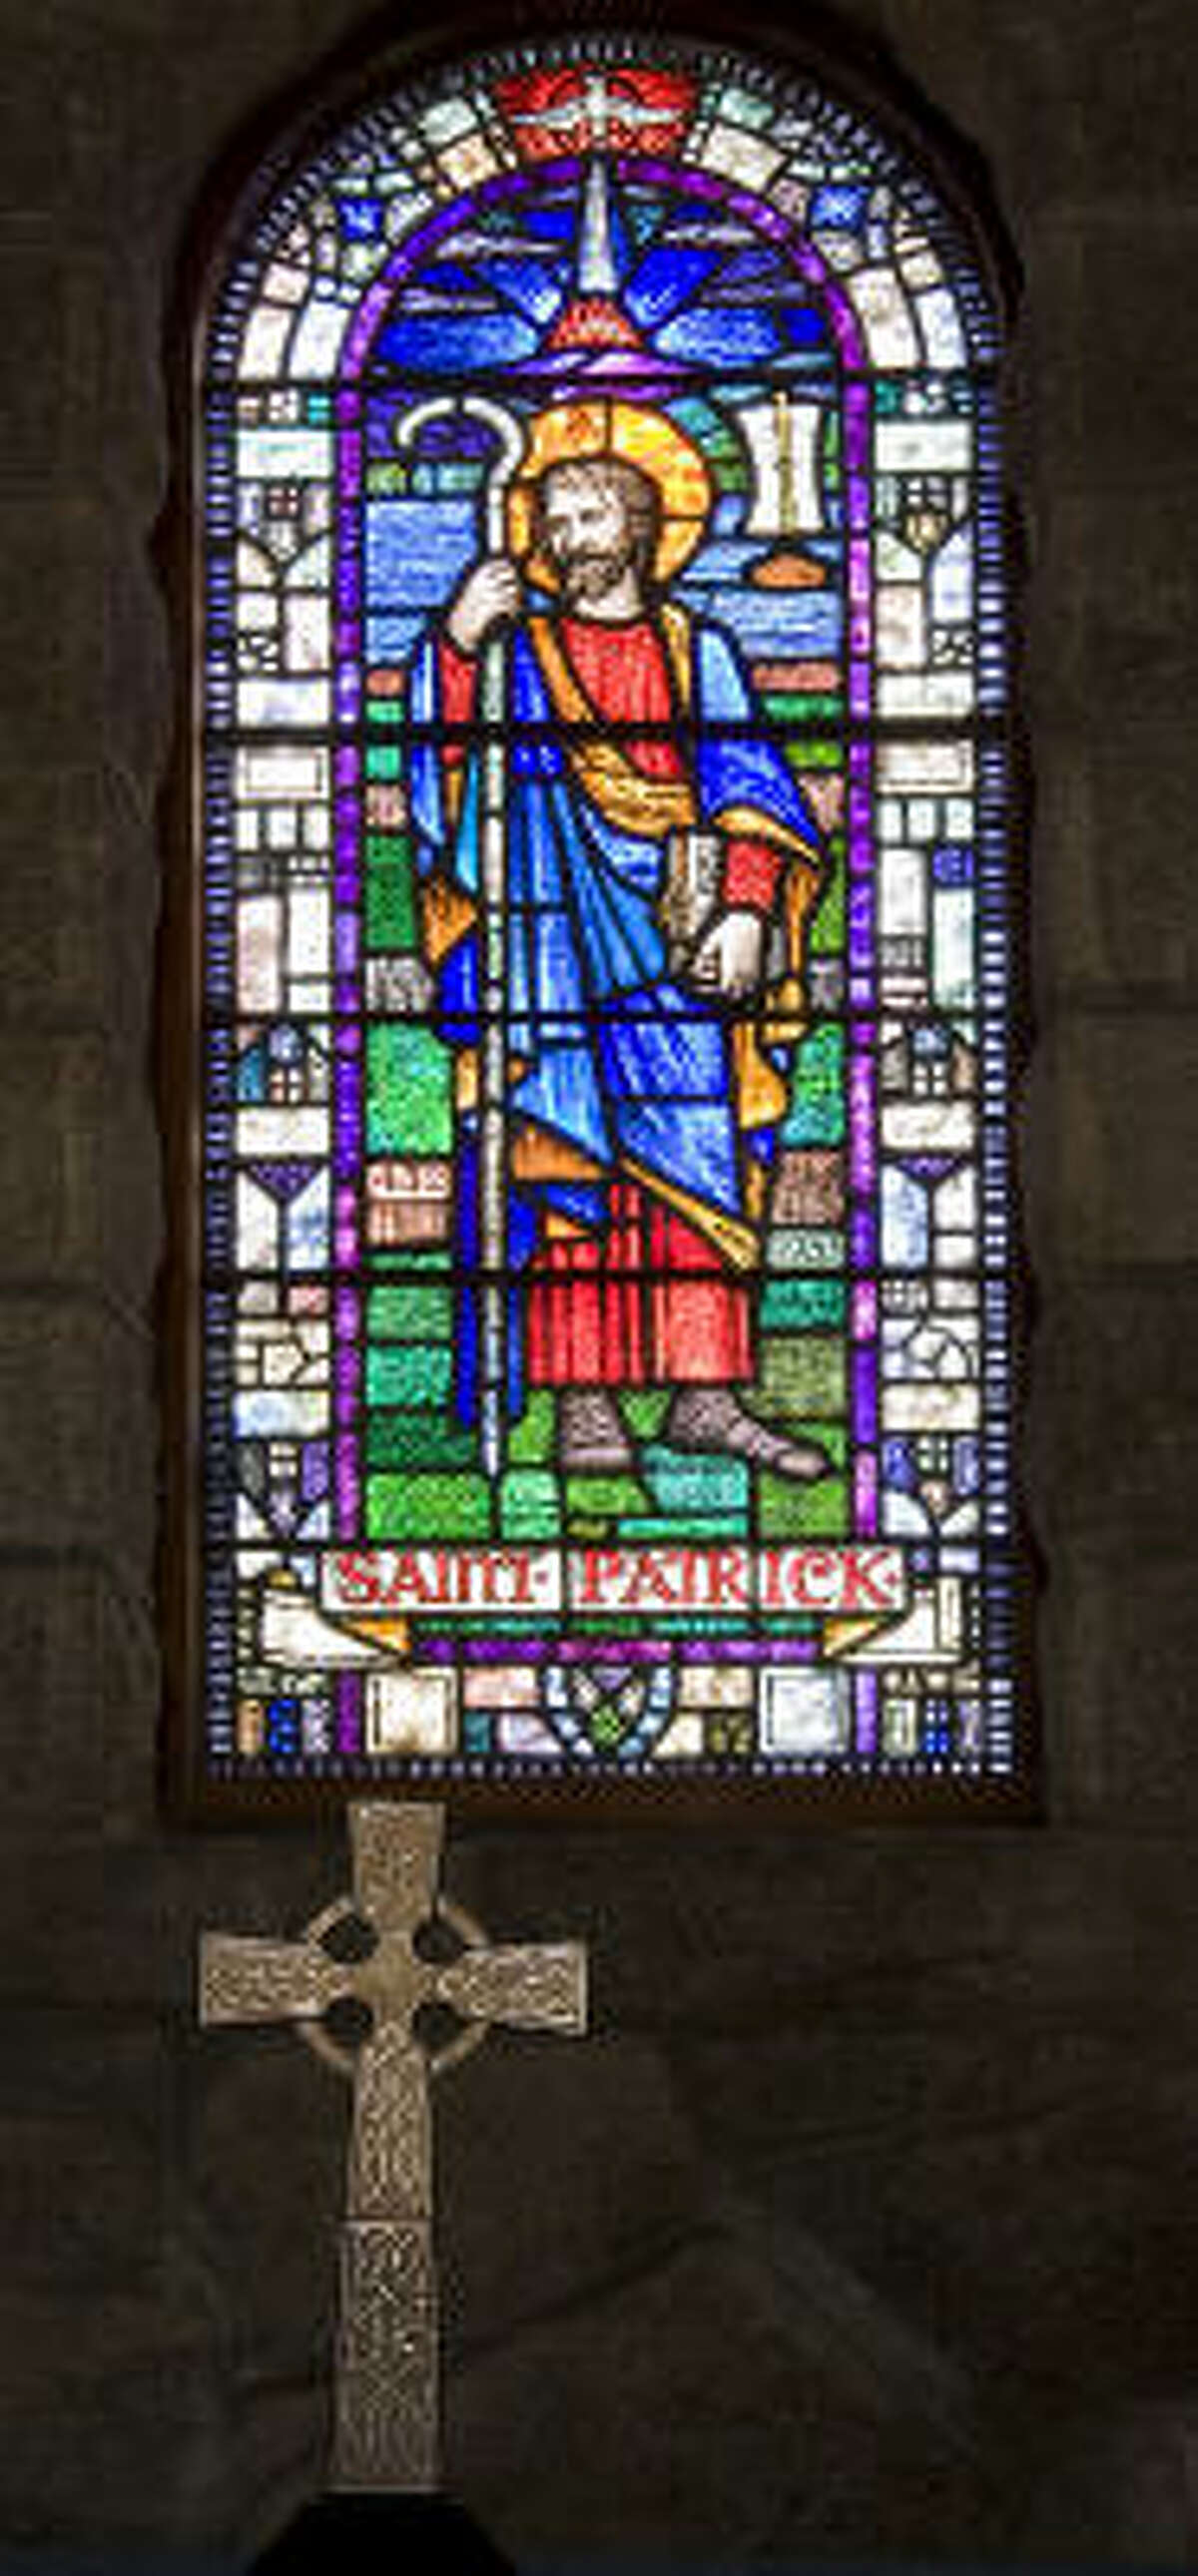 A stained glass window of saint patrick with celtic cross in foreground.